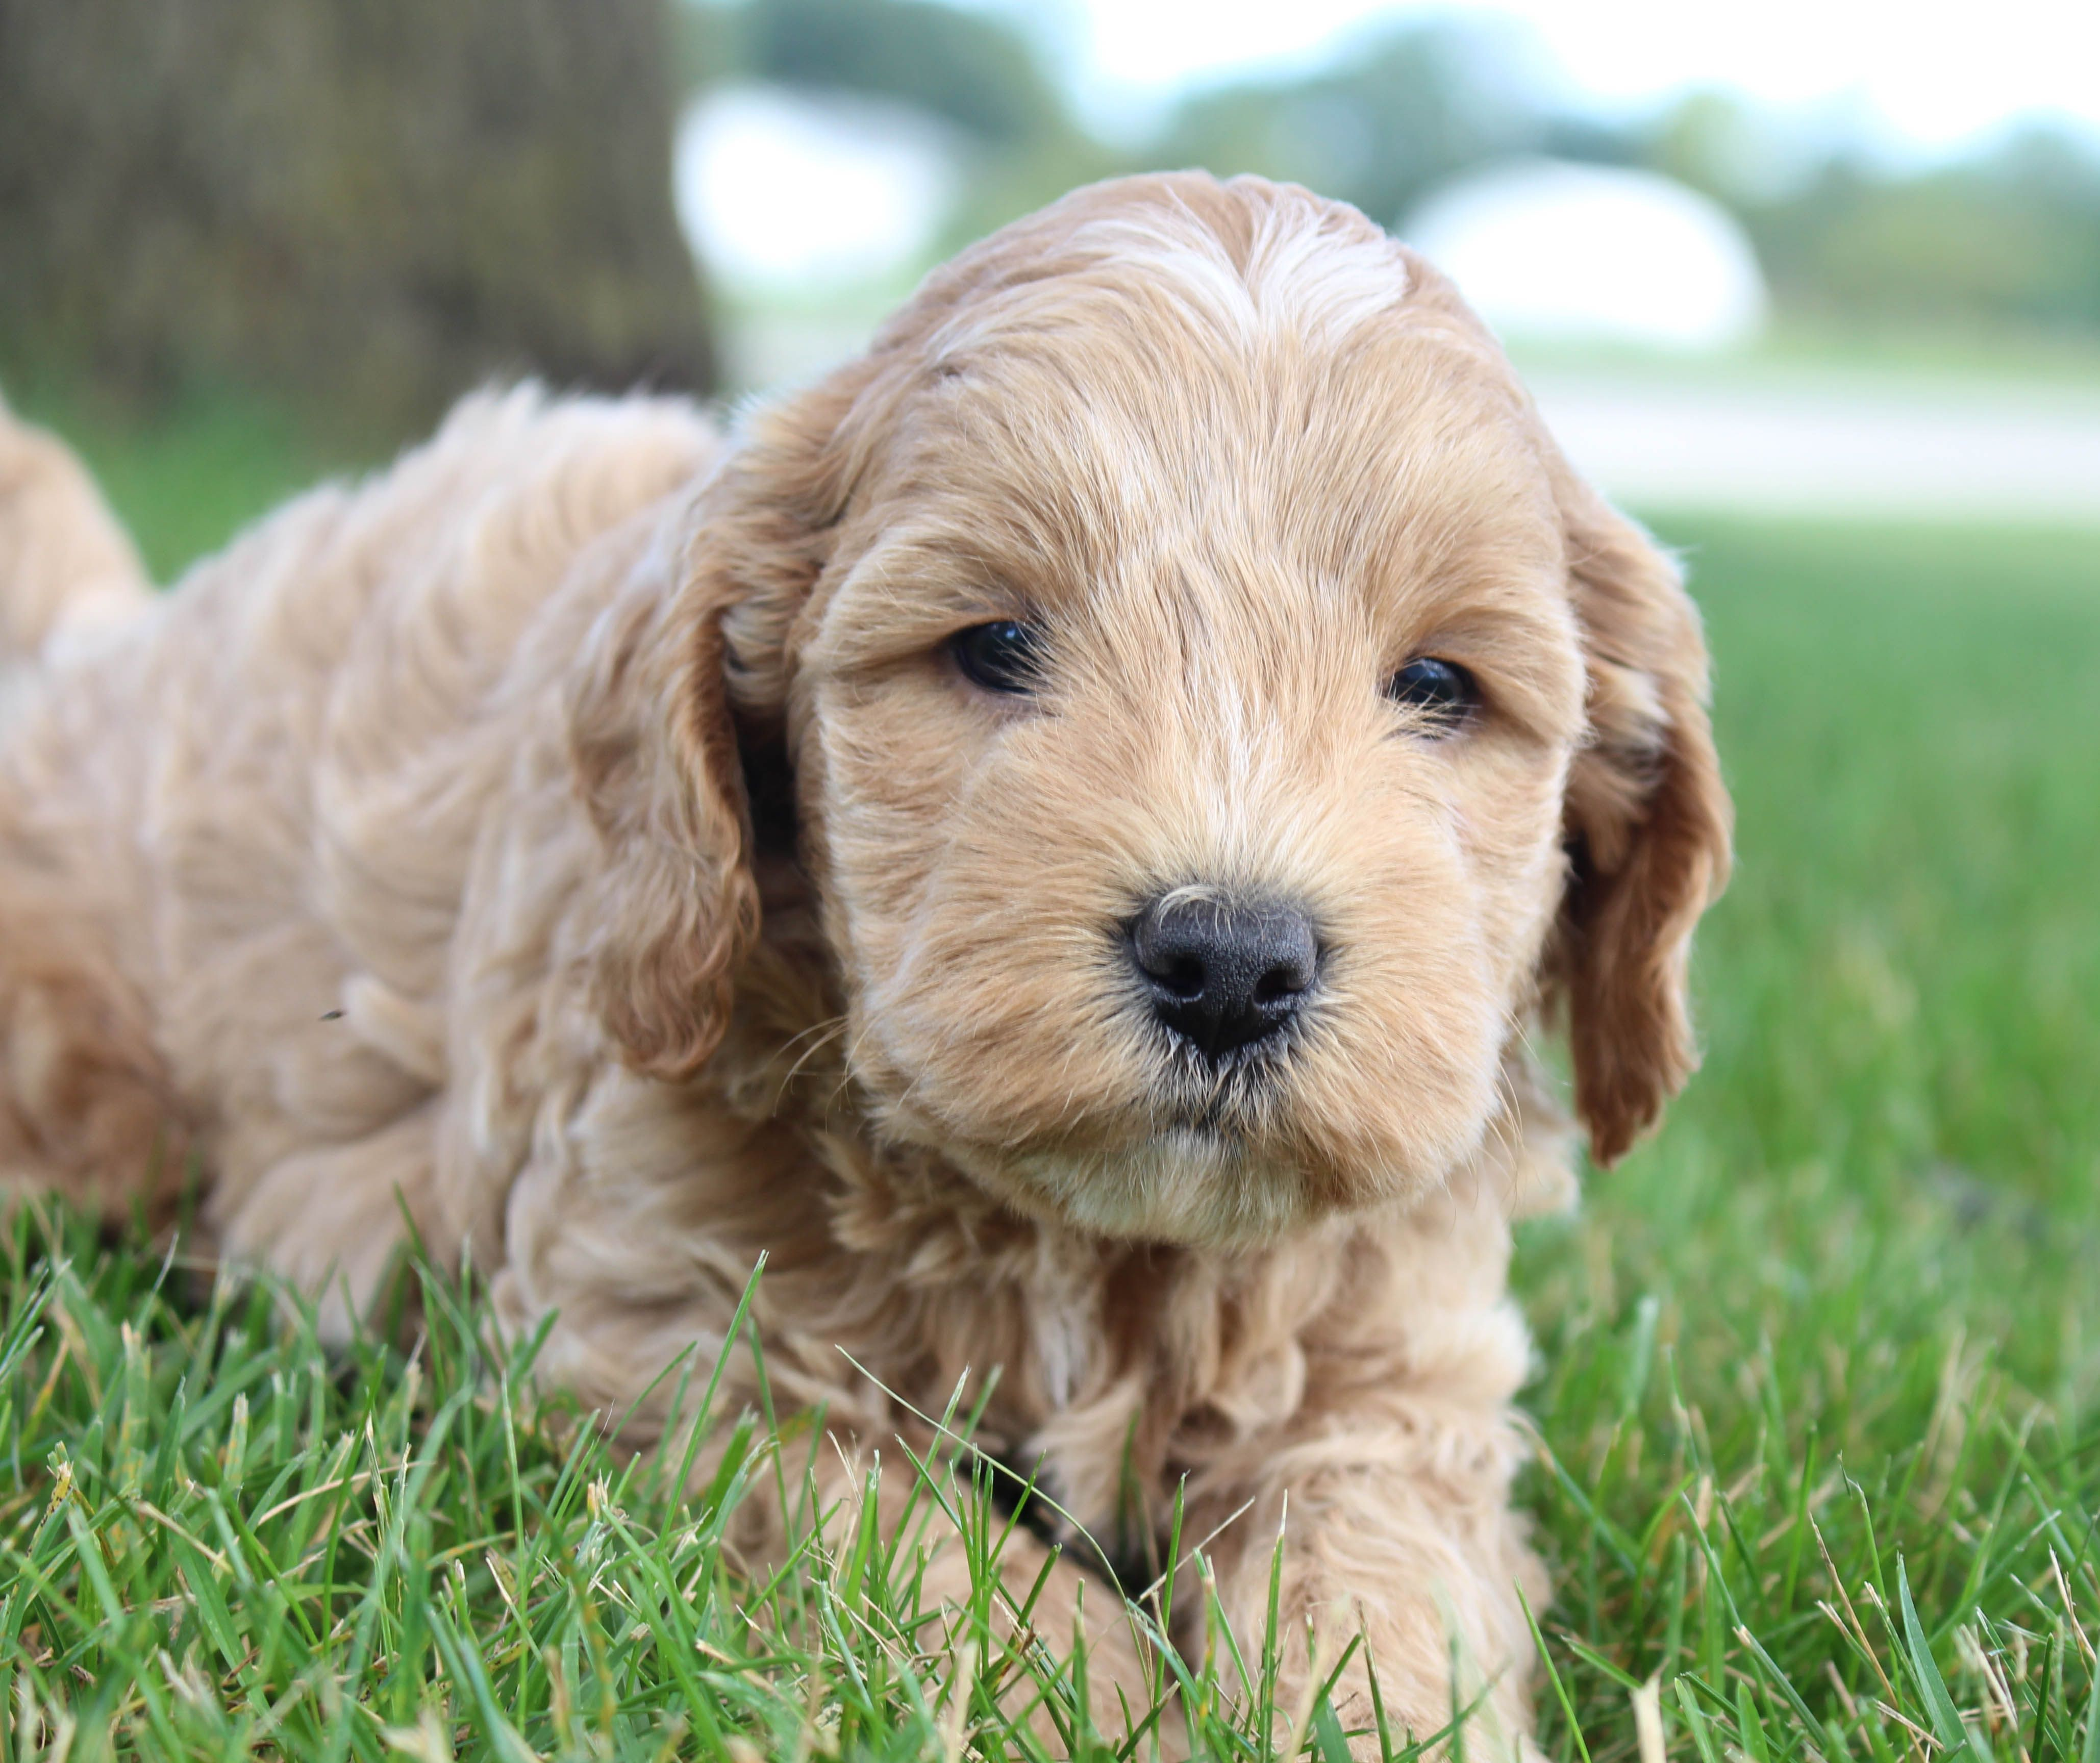 Carr AKC Cavapoo puppy for sale in Shipshewana, Indiana